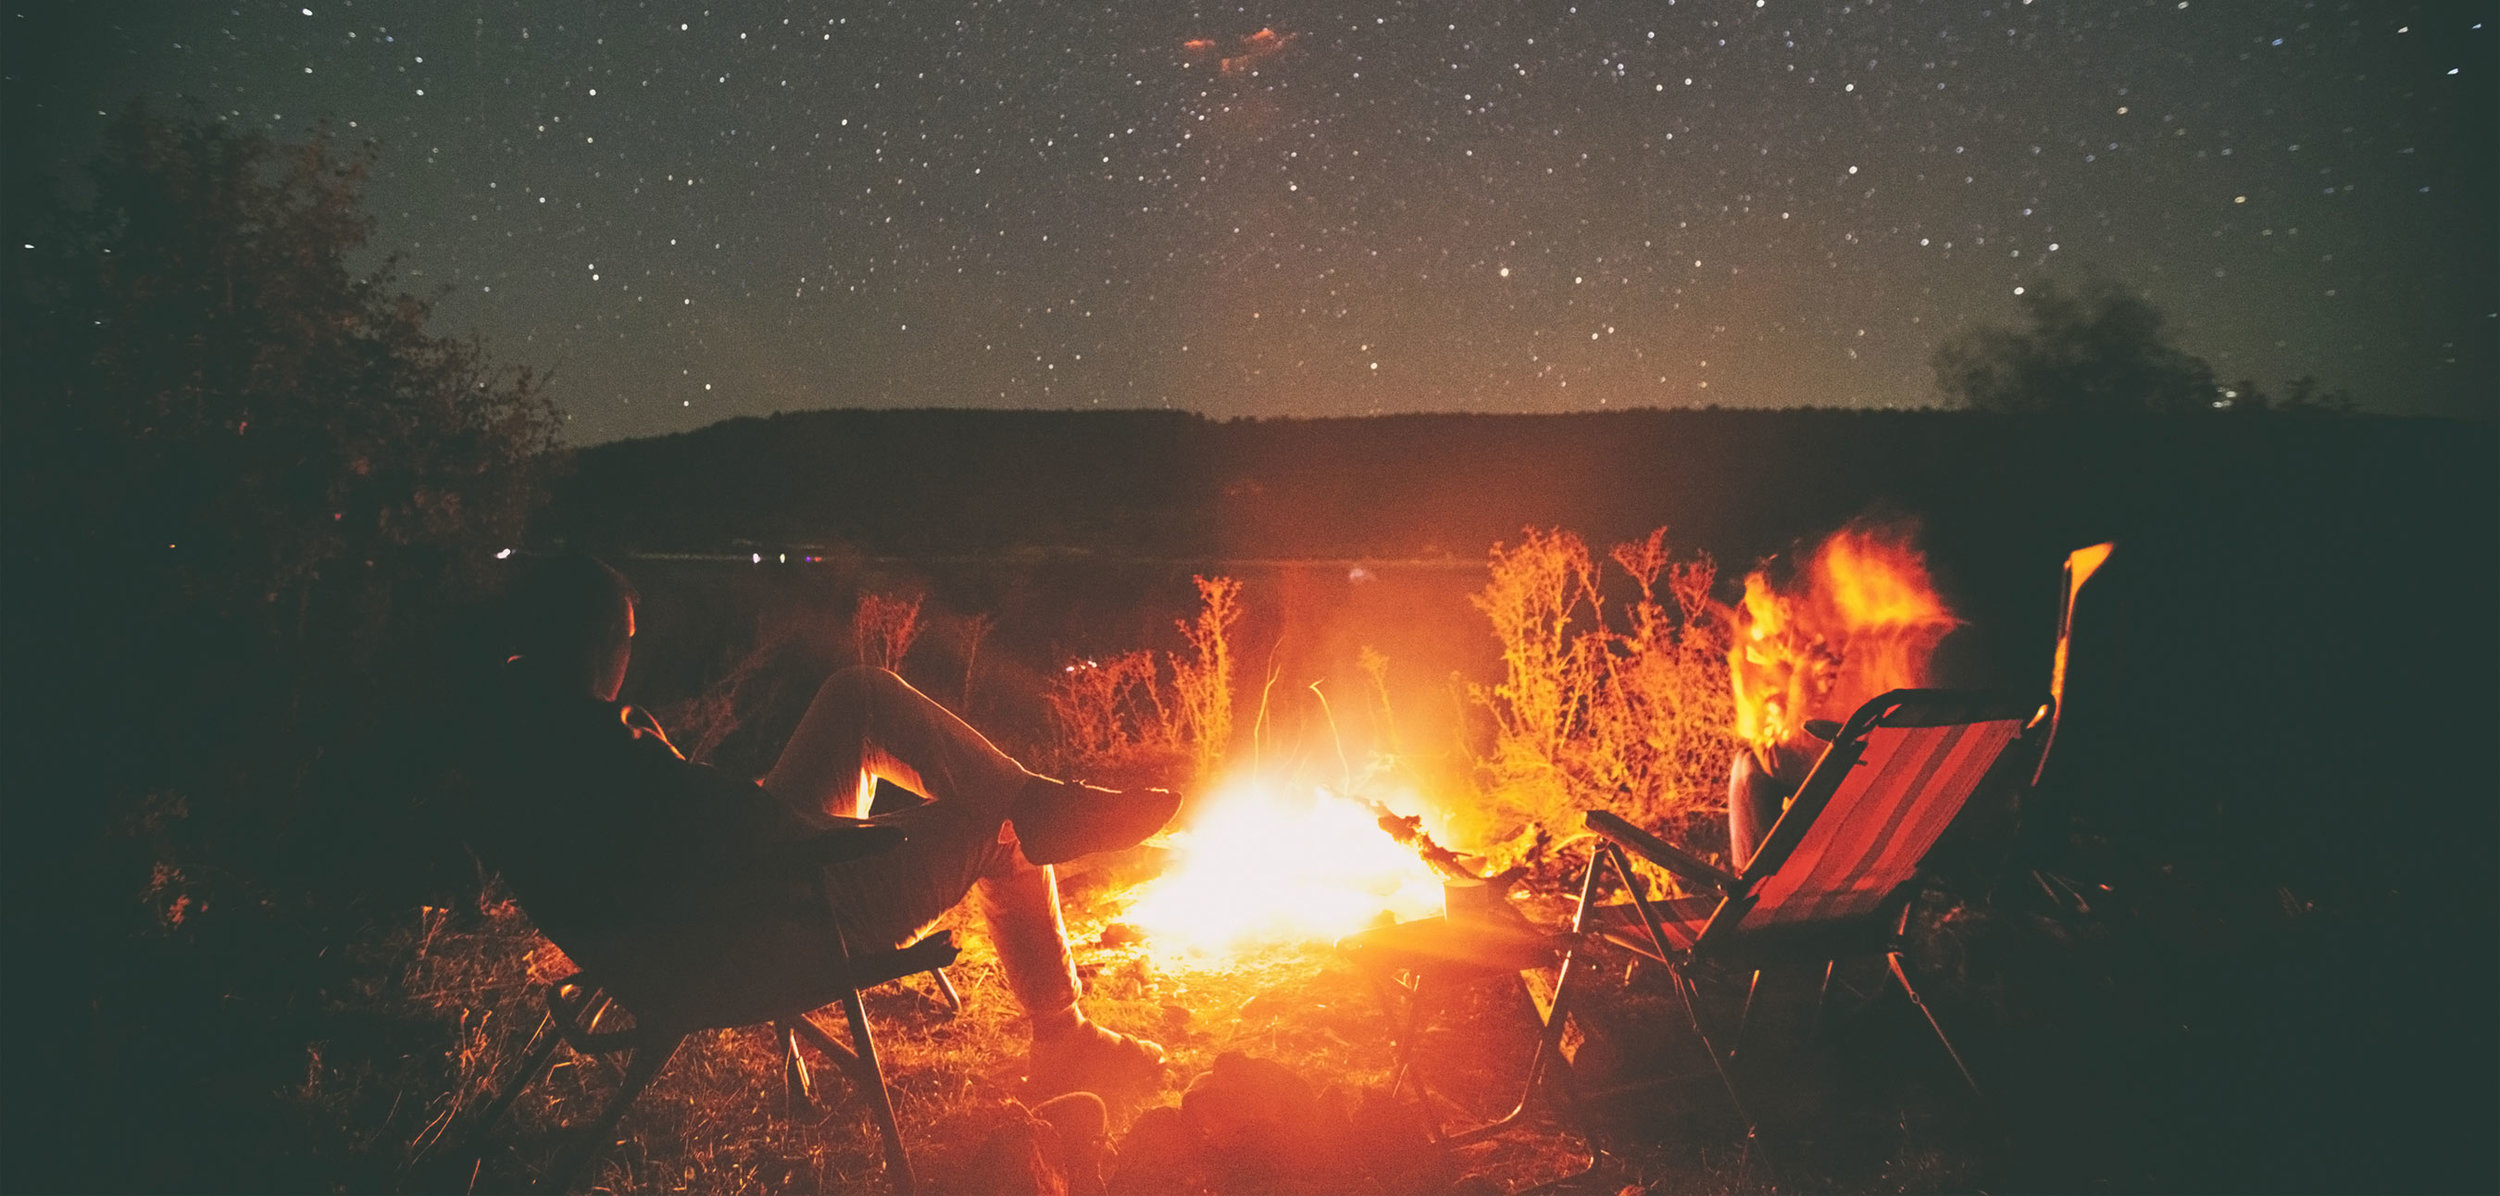 campfire-lets-collaborate-good-path-consulting-tracy-bech-narrow.jpg